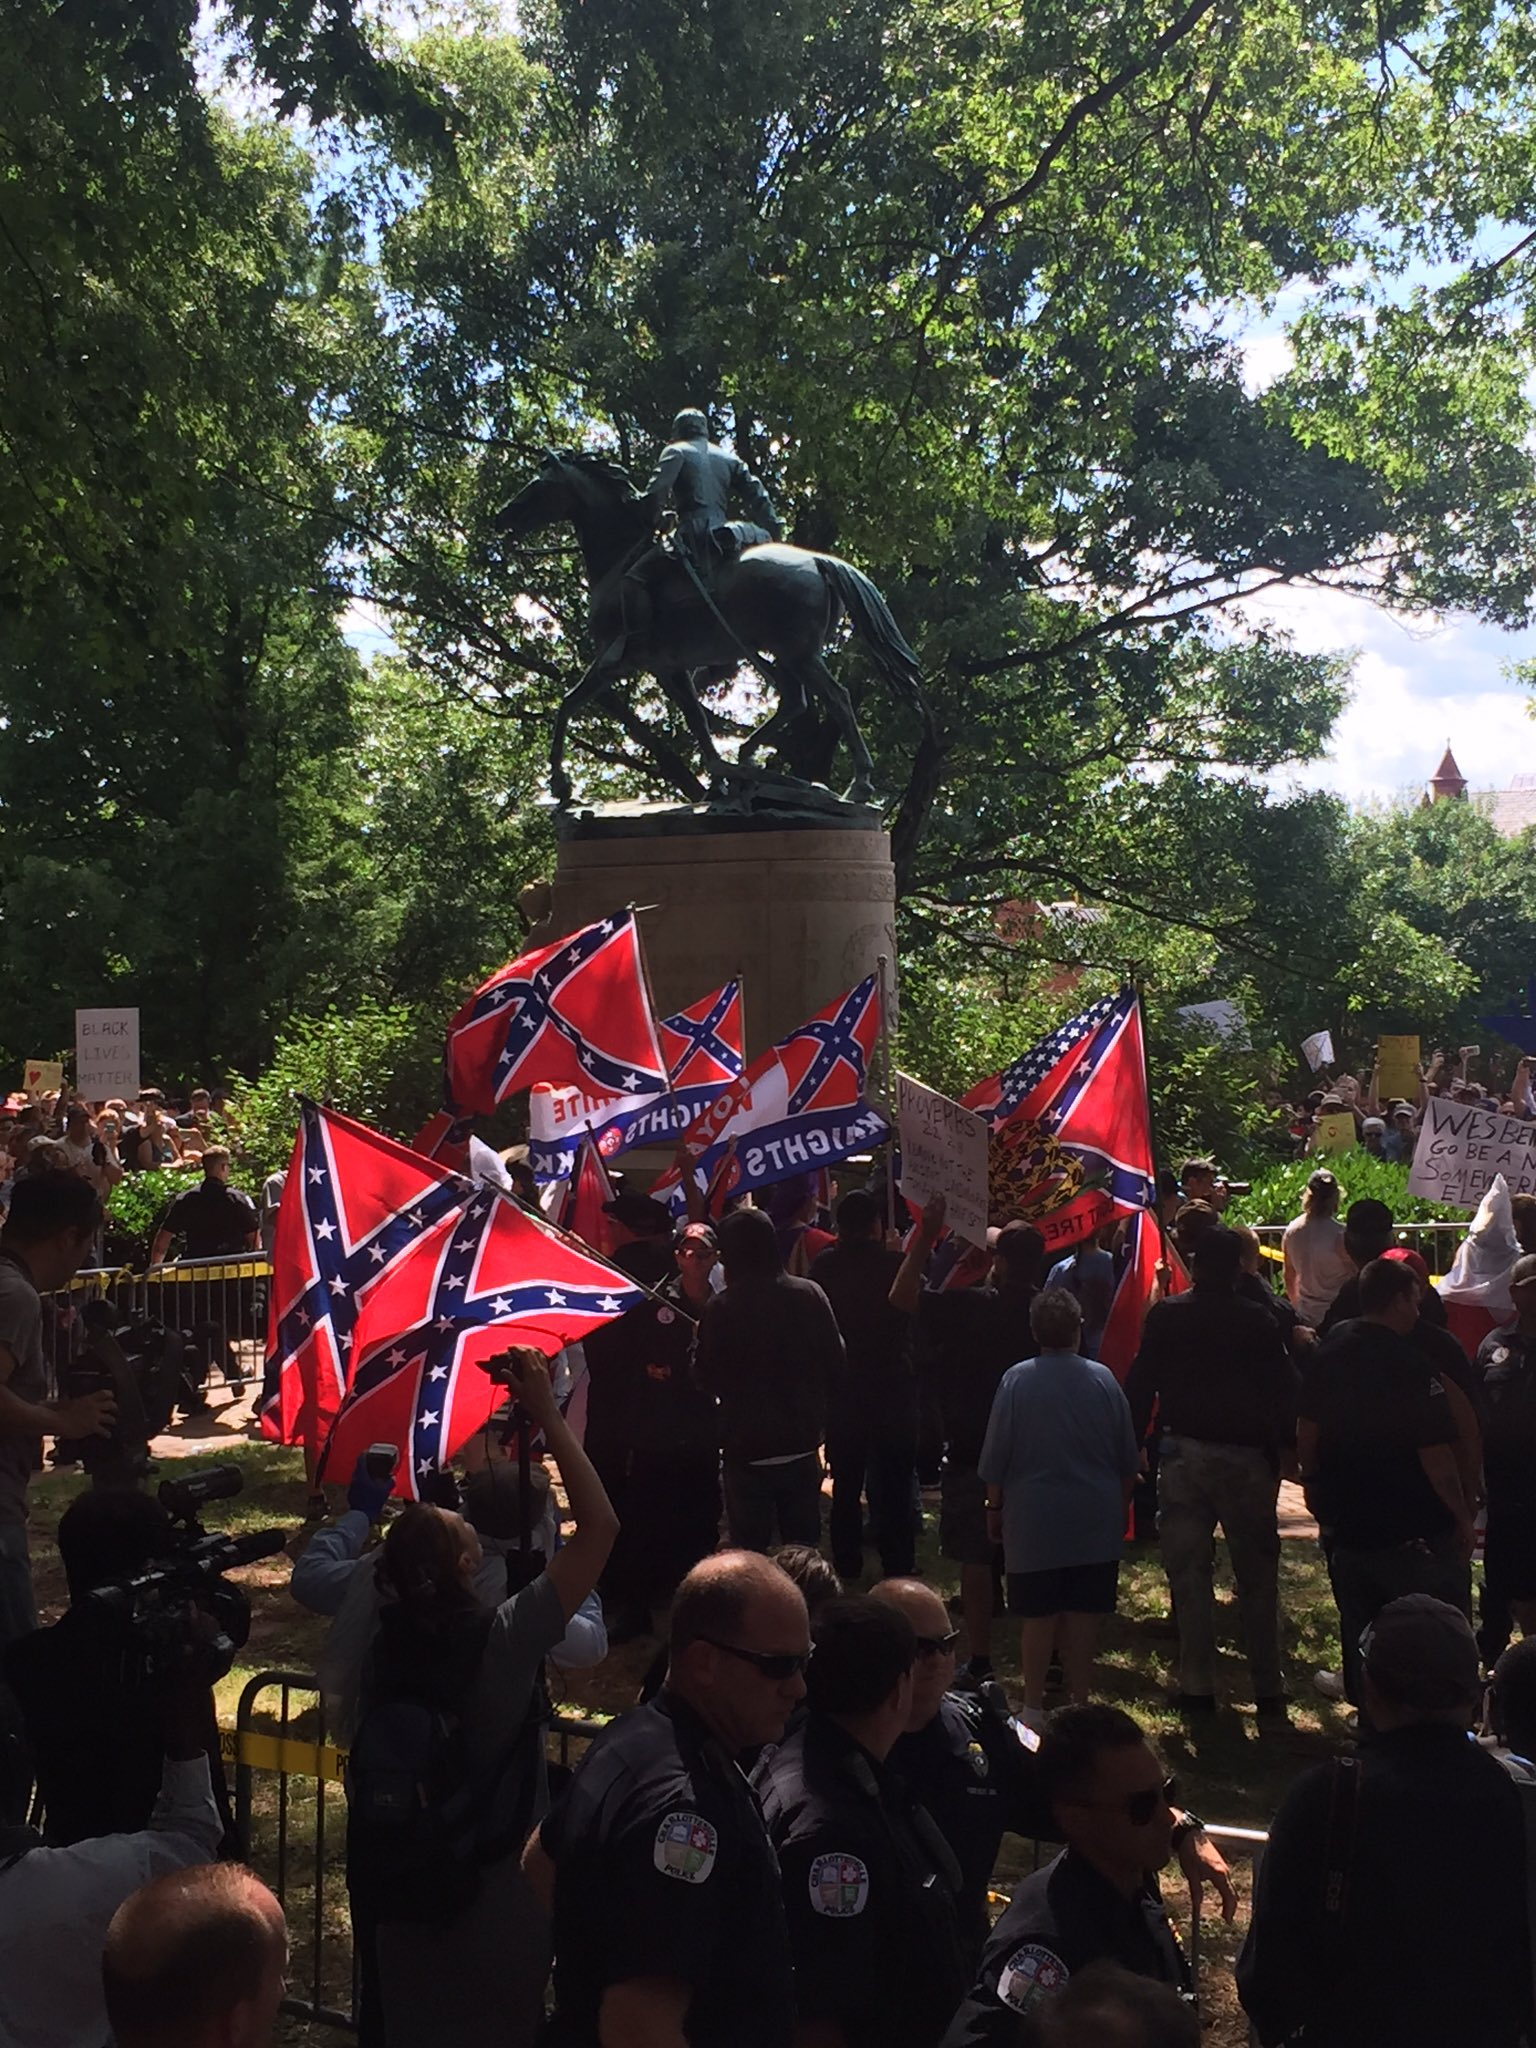 A few dozen KKK members have arrived at rally in Charlottesville to loud boos from hundreds gathered. https://t.co/WfR8fJgQHw